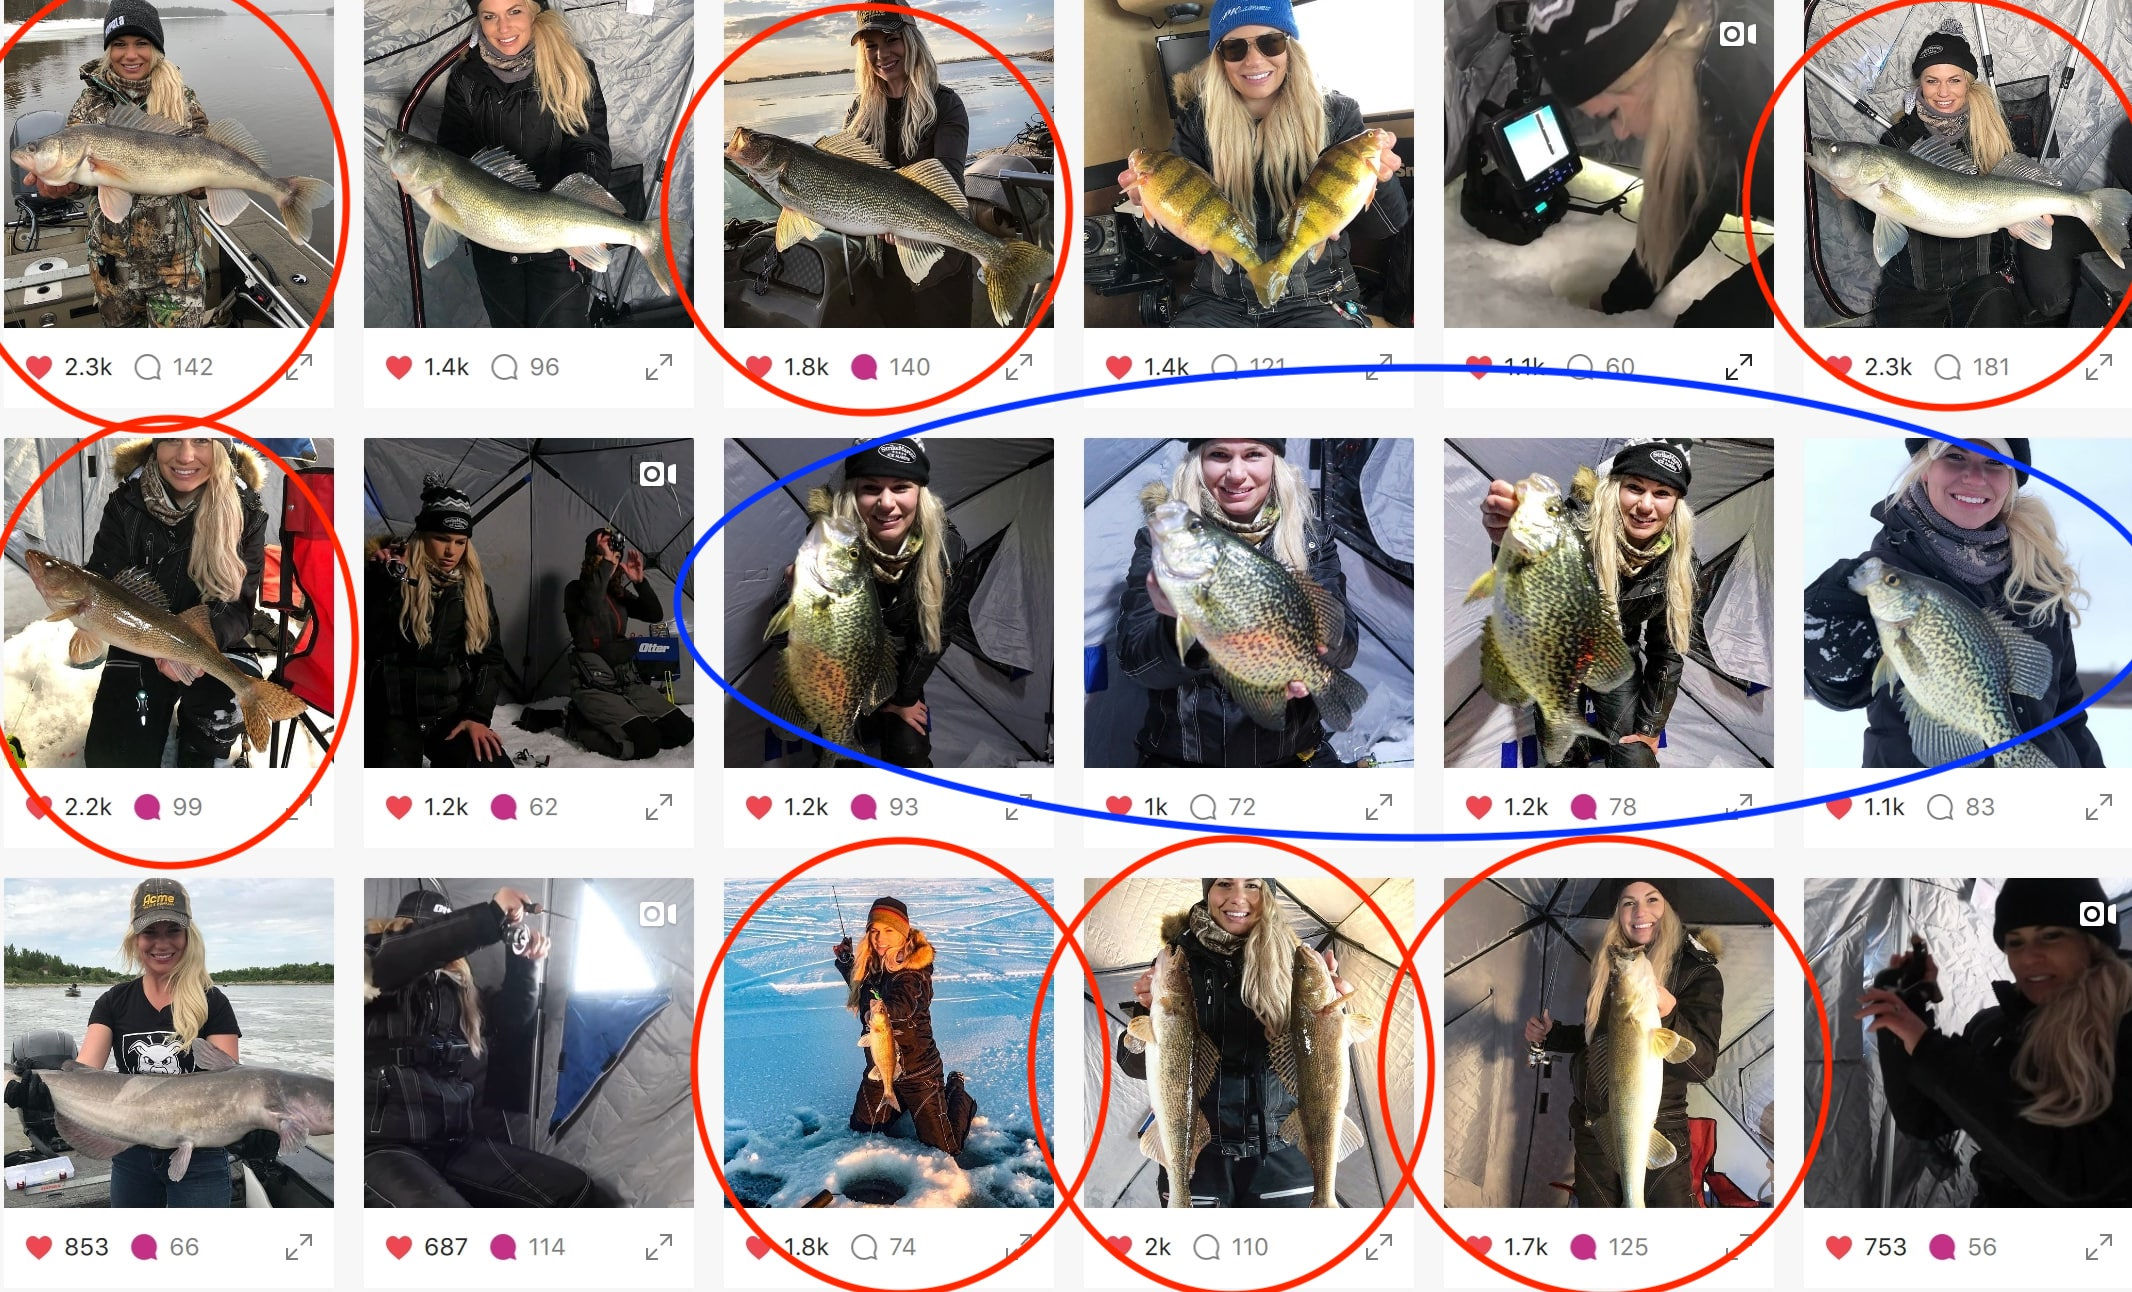 Aa you can see the images in the red are all of walleye (or sauger - the walleye's cousin). These all have similar engagement - thanks to image recognition. The blue is crappie - all having similar engagement.